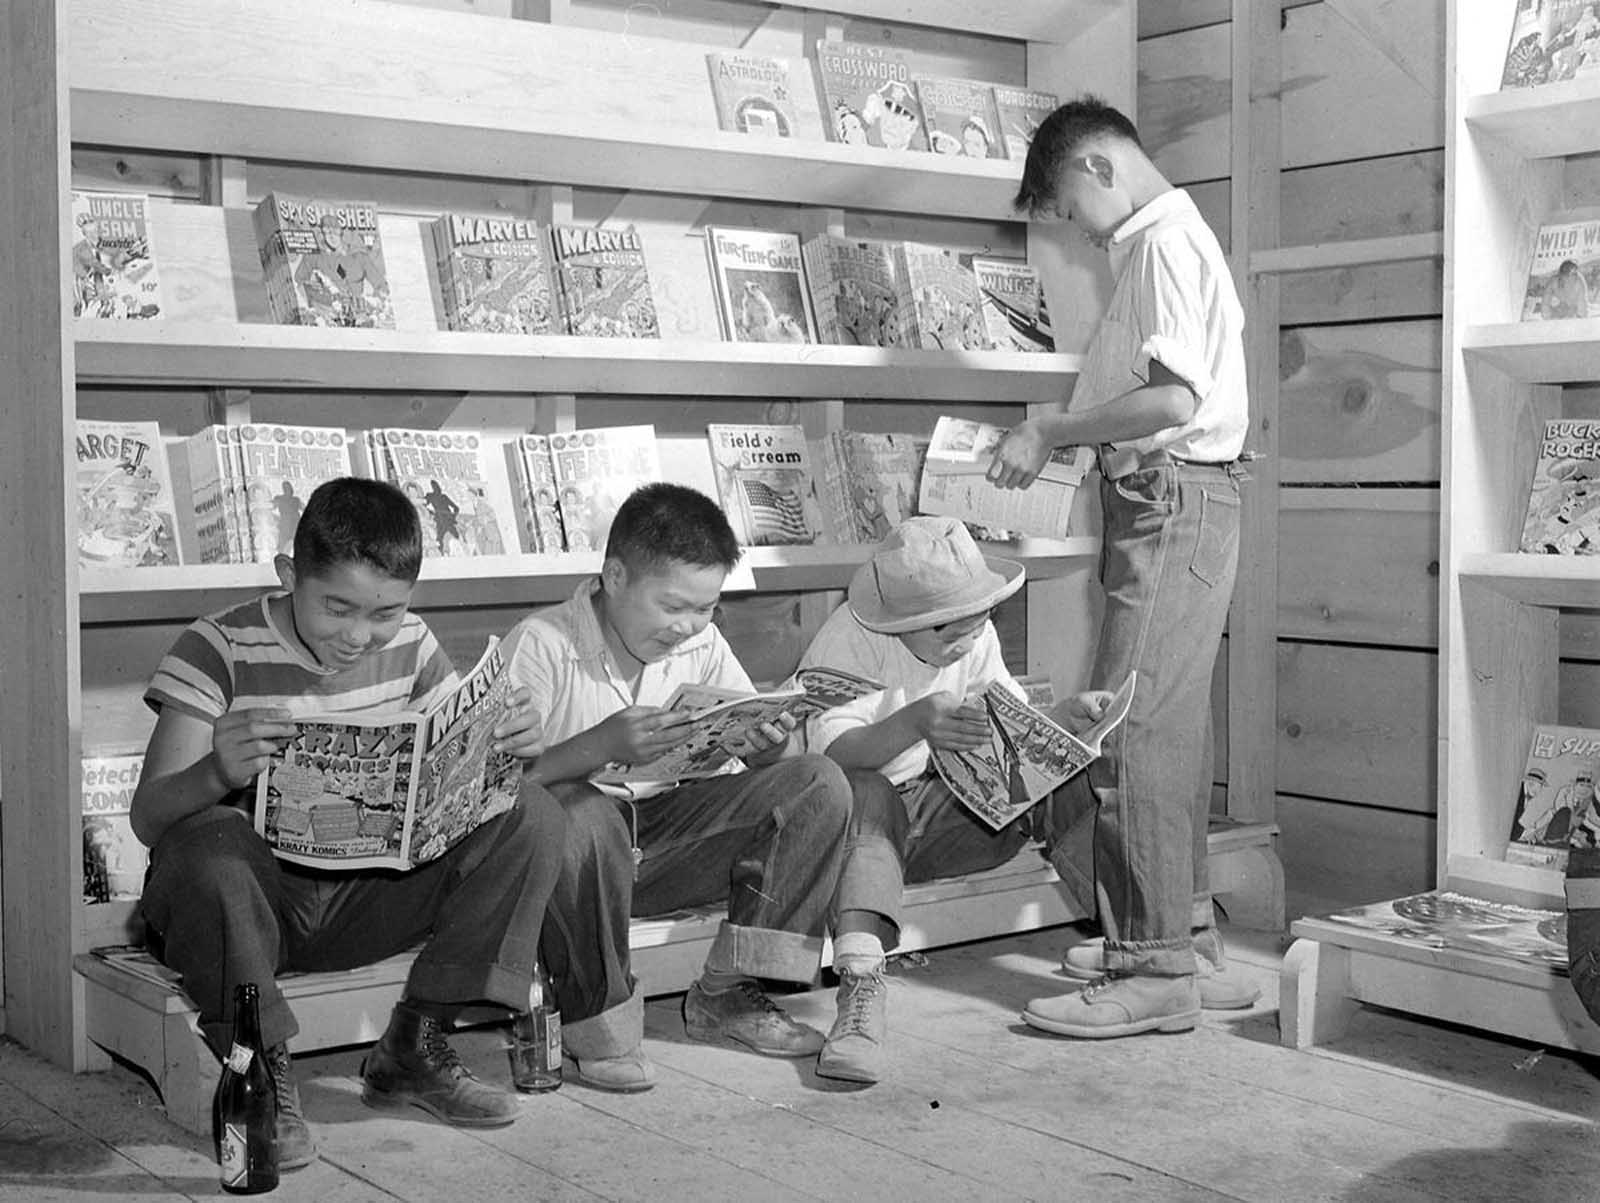 Four young evacuees from Sacramento, California, read comic books at the newsstand in the Tule Lake Relocation Center, in Newell, California, on July 1, 1942.